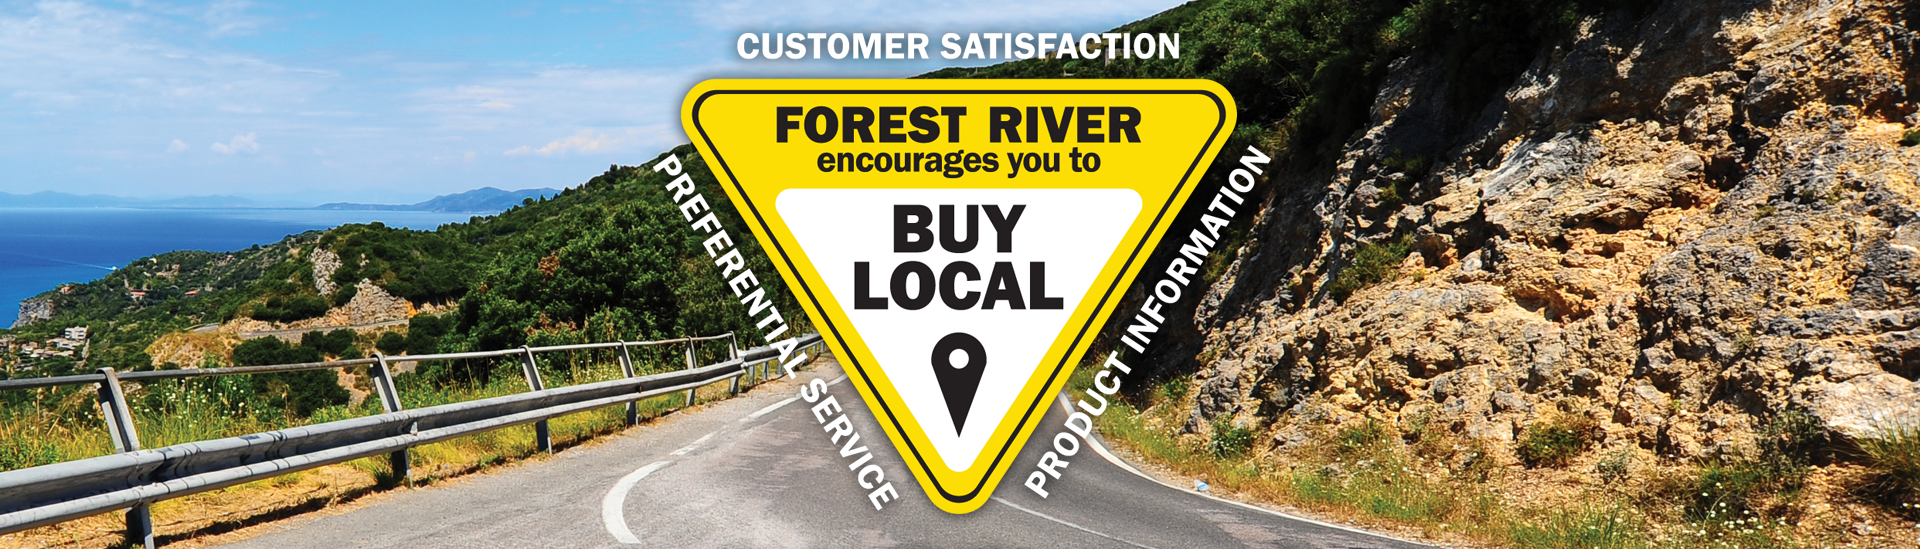 Forest River encourages you to buy local: customer satisfaction, preferential service, product information